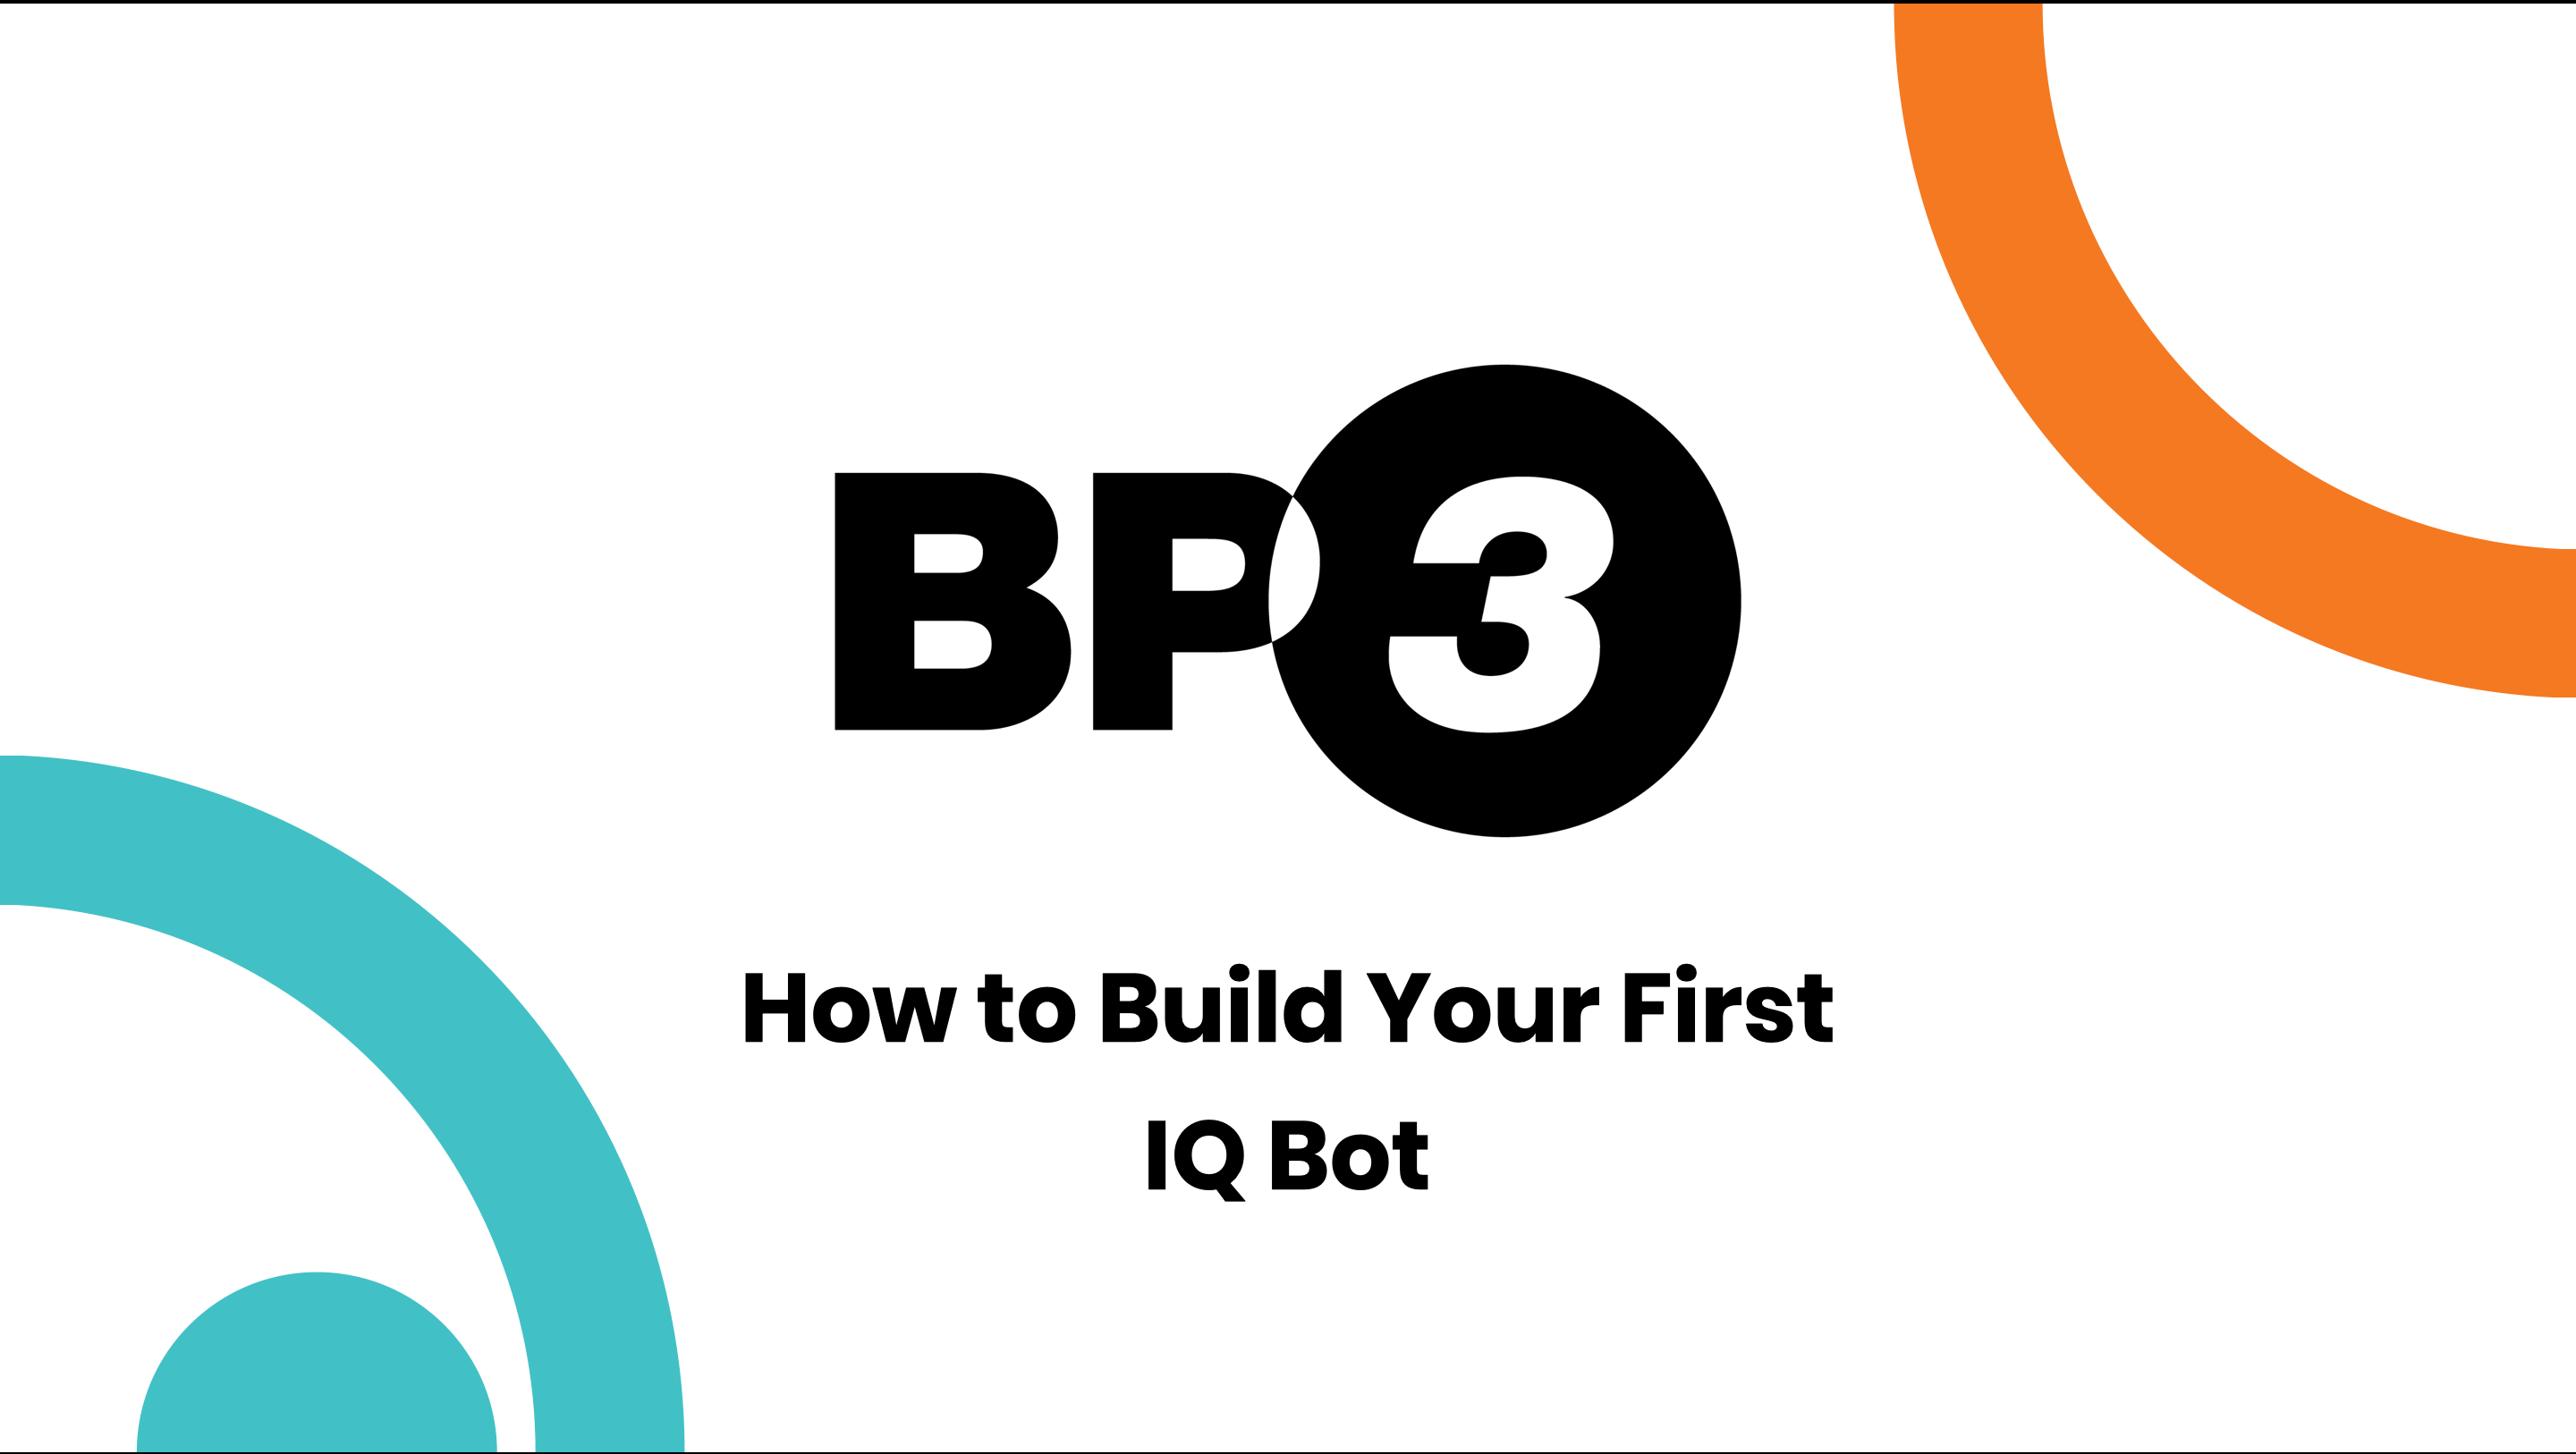 How to Build Your First IQ Bot